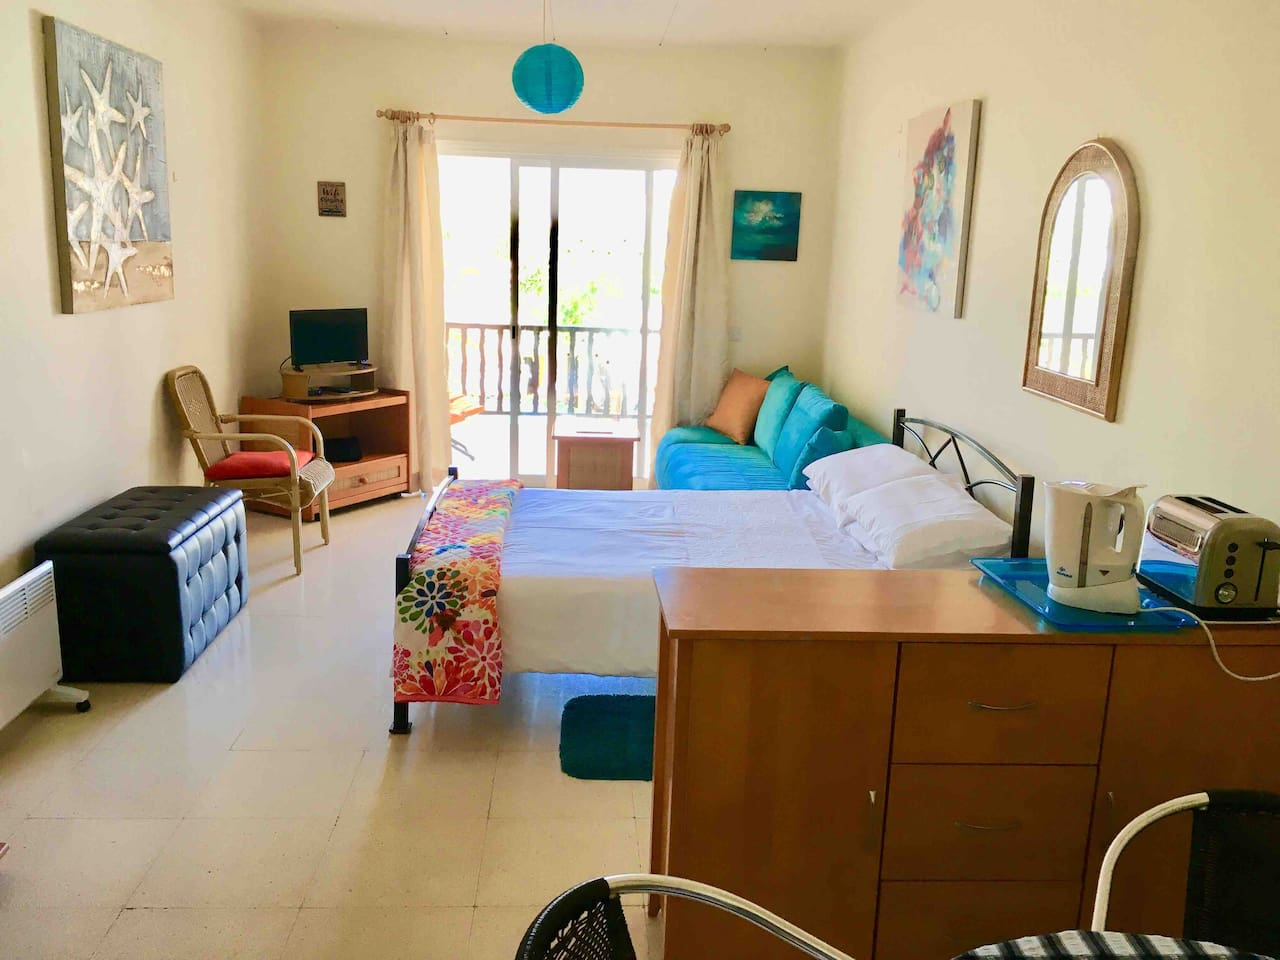 Double bed, TV, satellite box, sofa, balcony